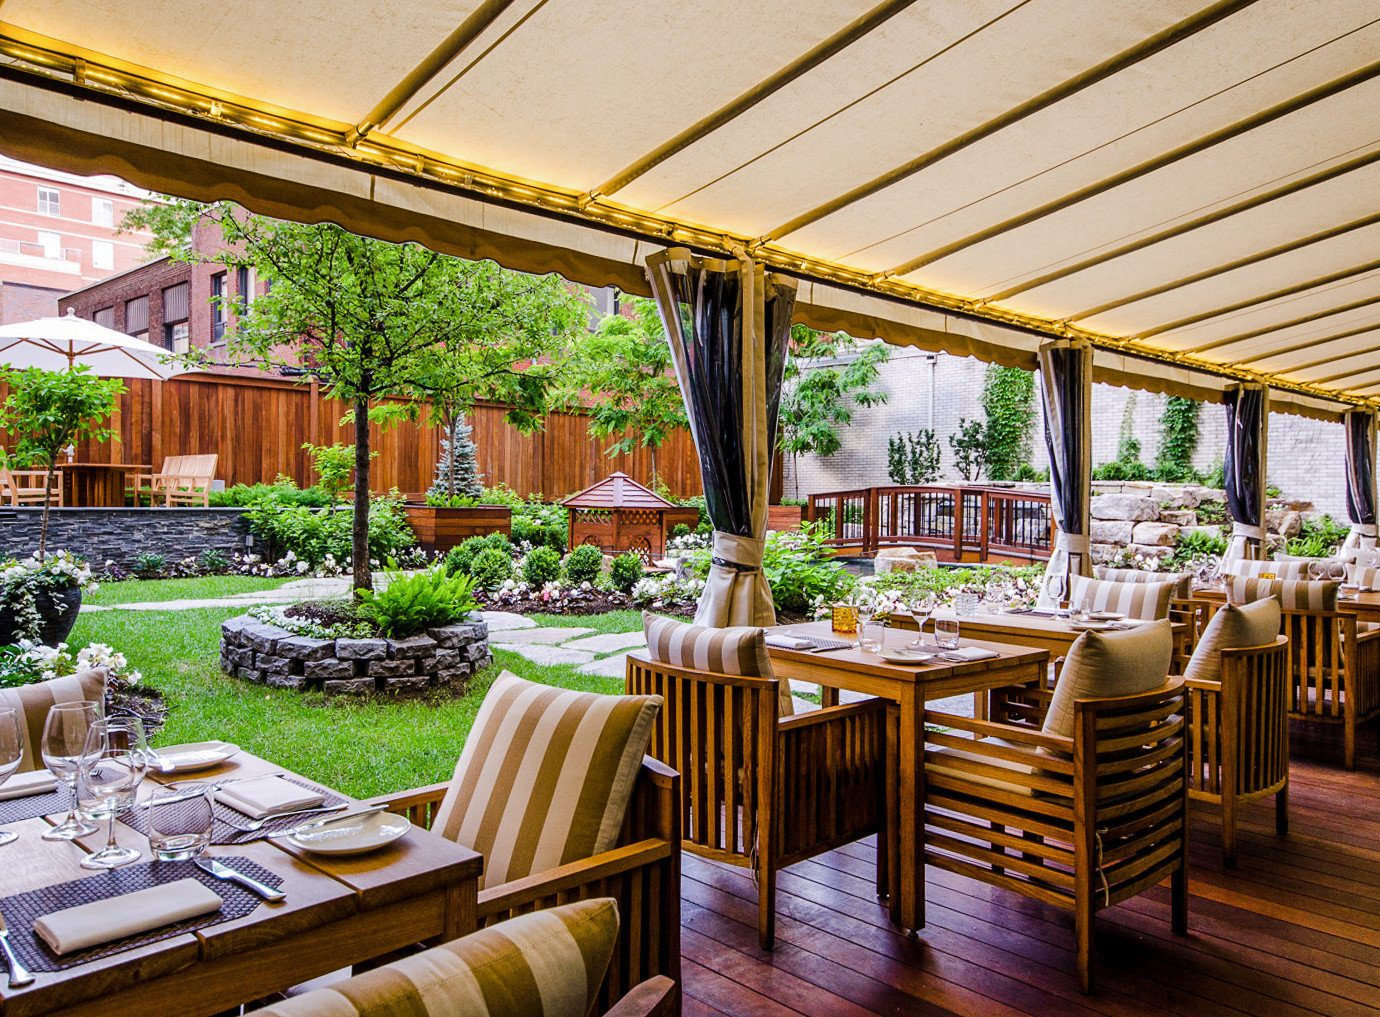 Canada Hotels Montreal Trip Ideas table chair building restaurant function hall real estate outdoor structure Dining interior design pergola backyard Patio set furniture